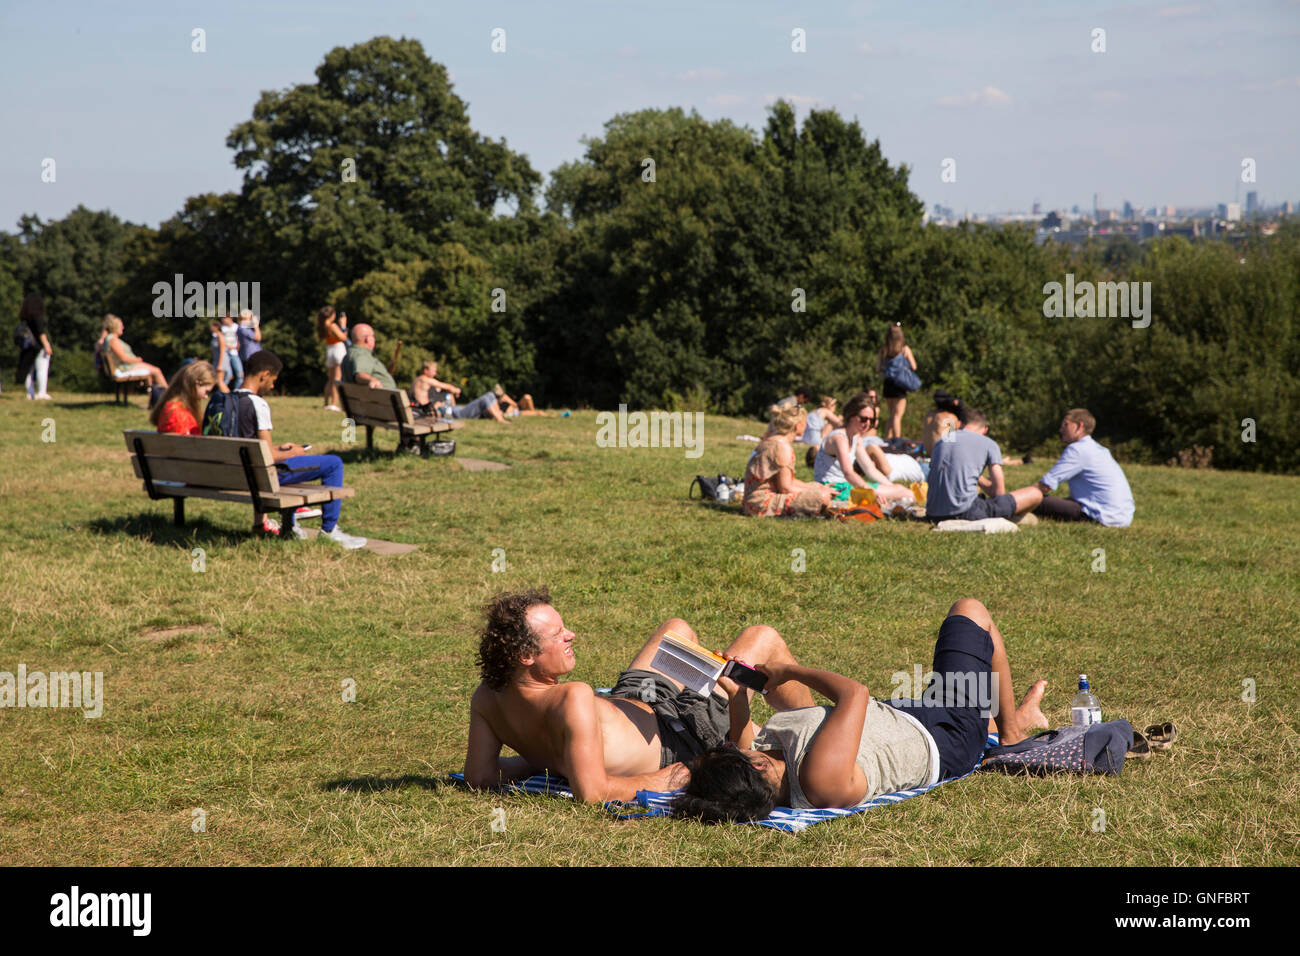 London, UK. 30th Aug, 2016. UK Weather: People enjoy in the sun on Hampstead Heath during hot summer day in London. - Stock Image